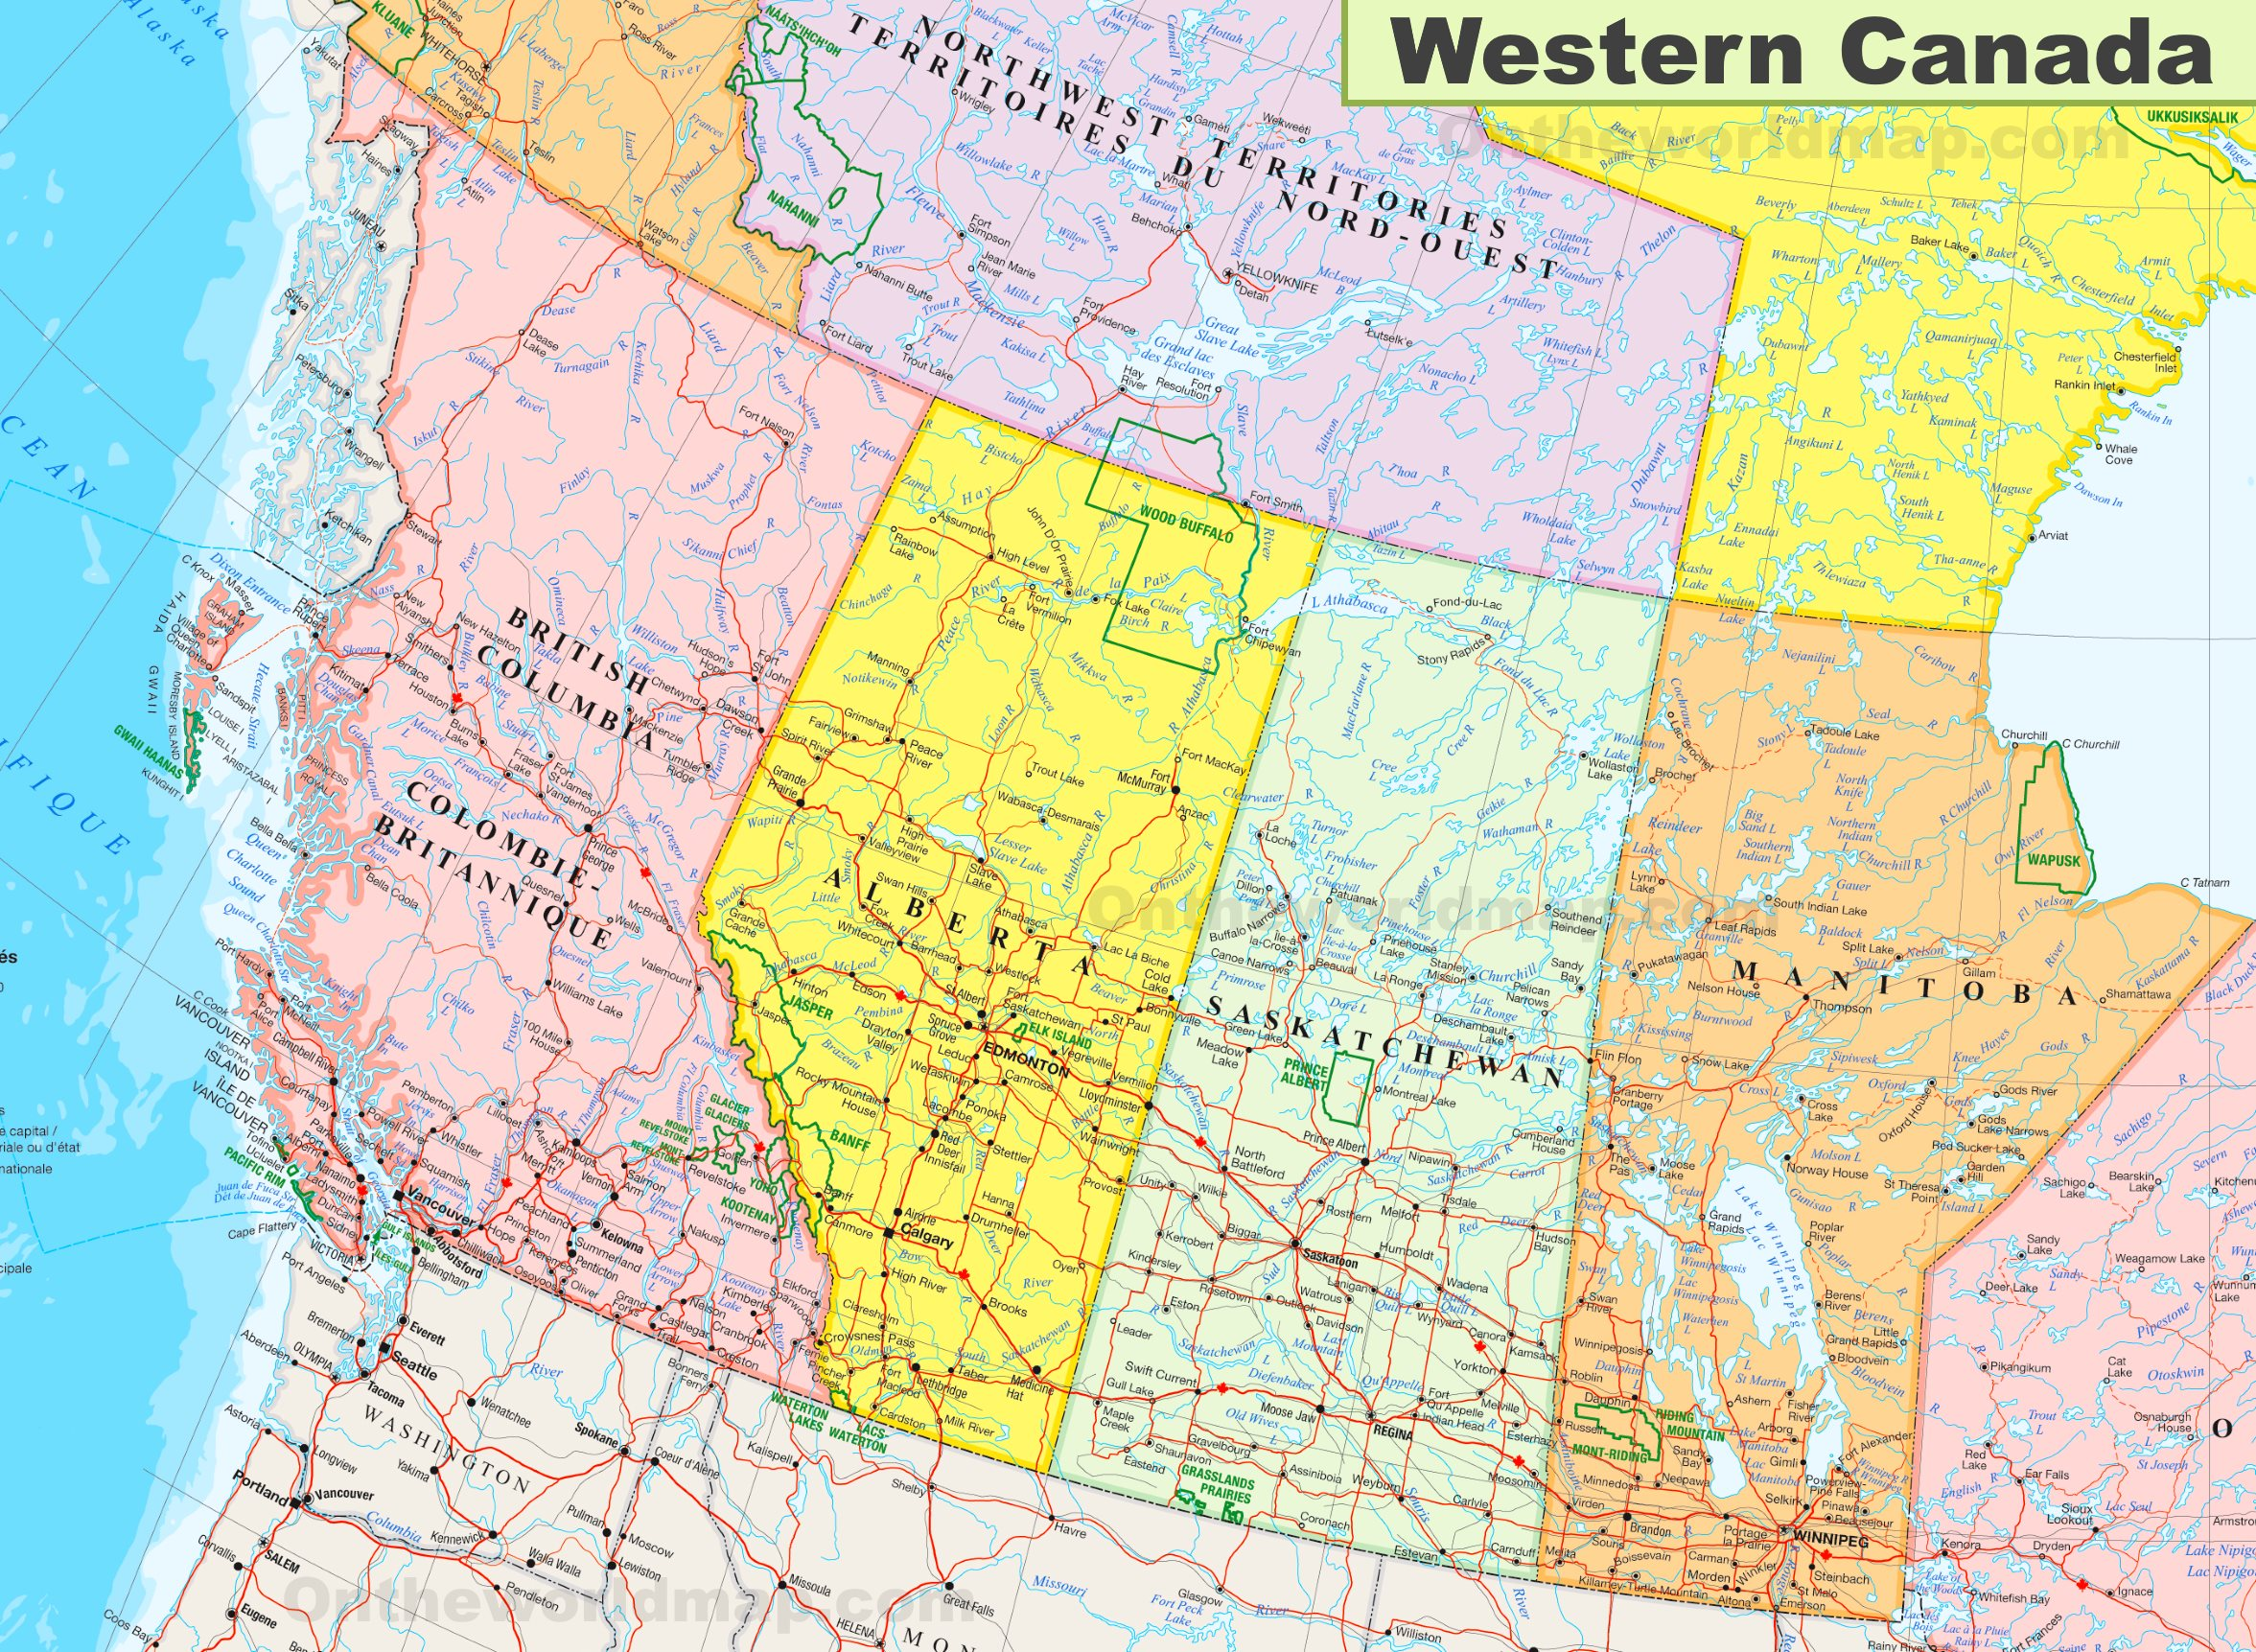 Map Of Western Canada Provinces.Map Of Western Canada